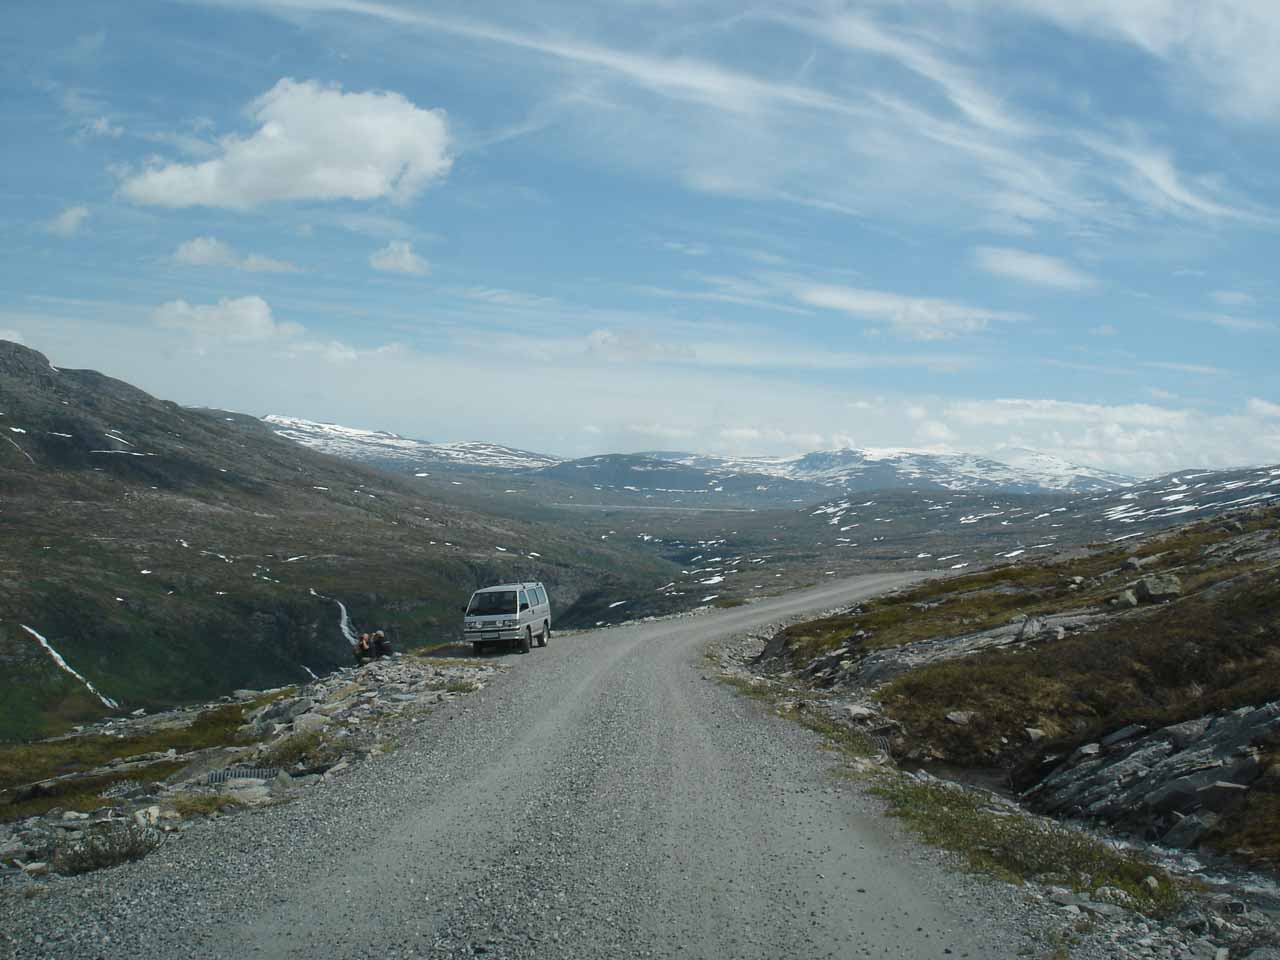 One last look back at the highland plateau above Eikesdalen before we descended back into the valley